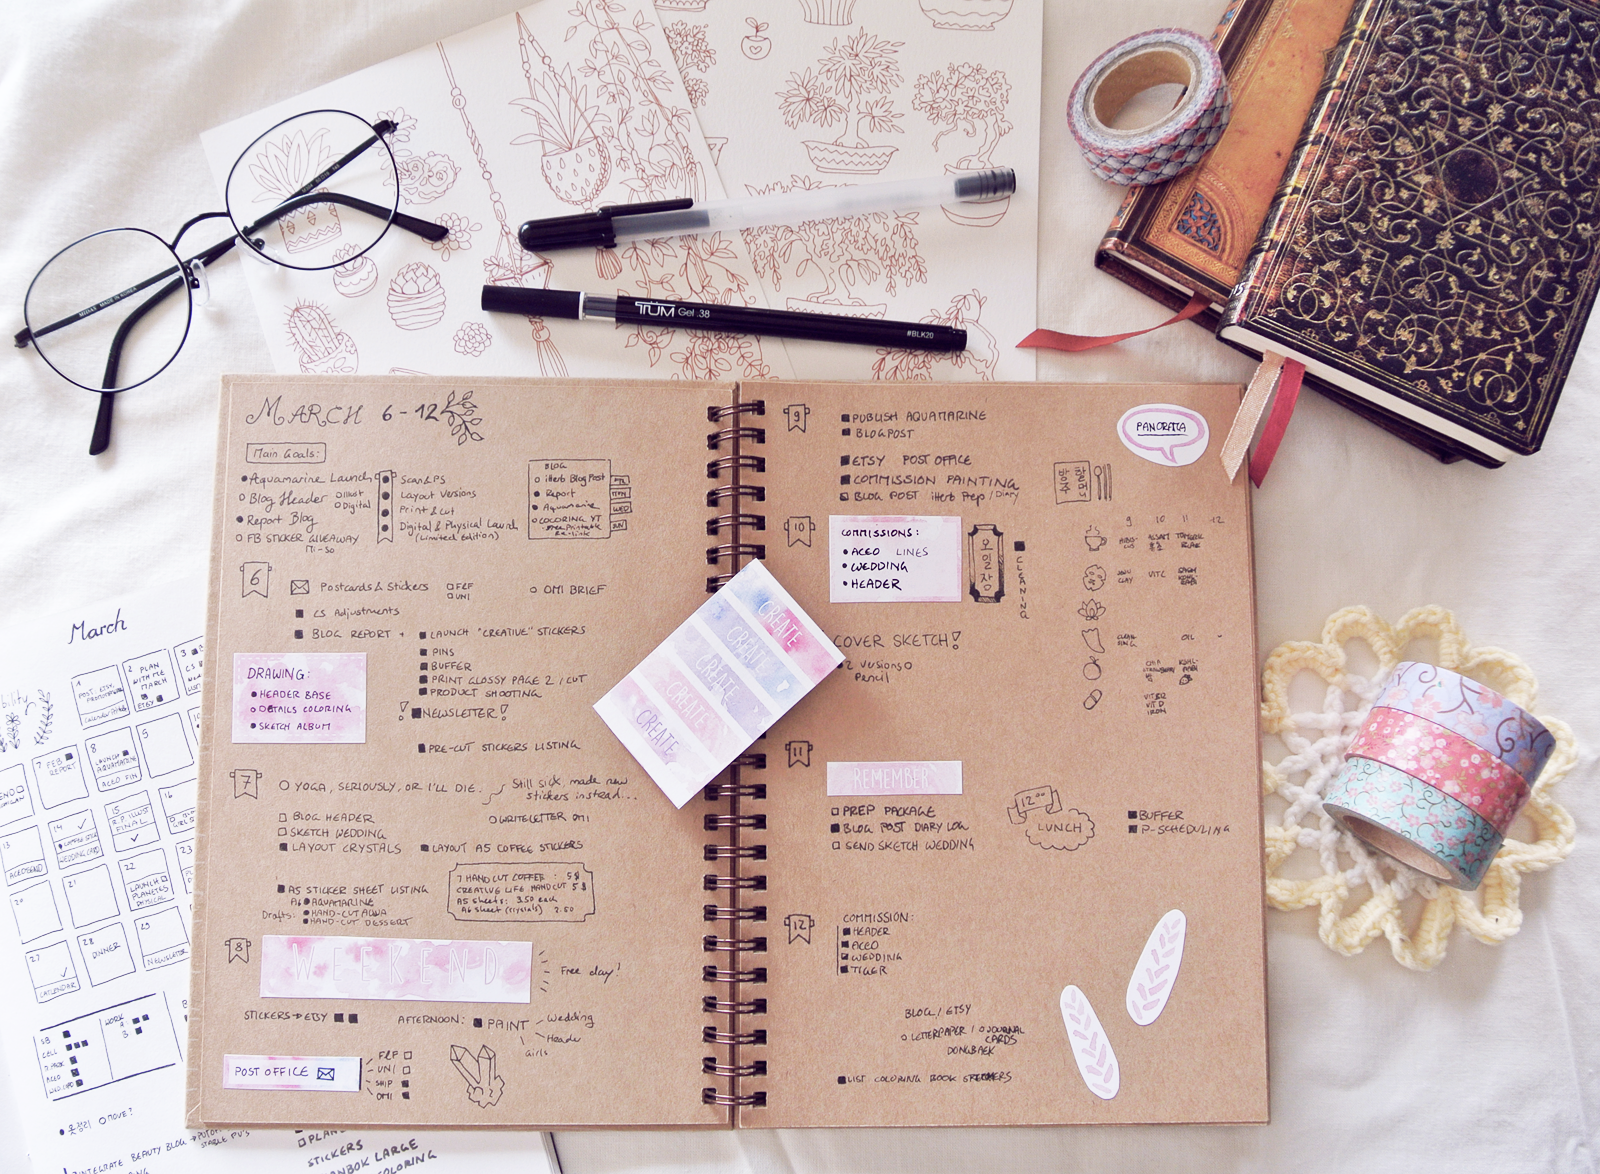 See that tiny bundle of drawings and text on the upper right side of the journal? That's my first attempt at tracking my habits. Note the empty space next to the lotus flower, which was supposed to track yoga.